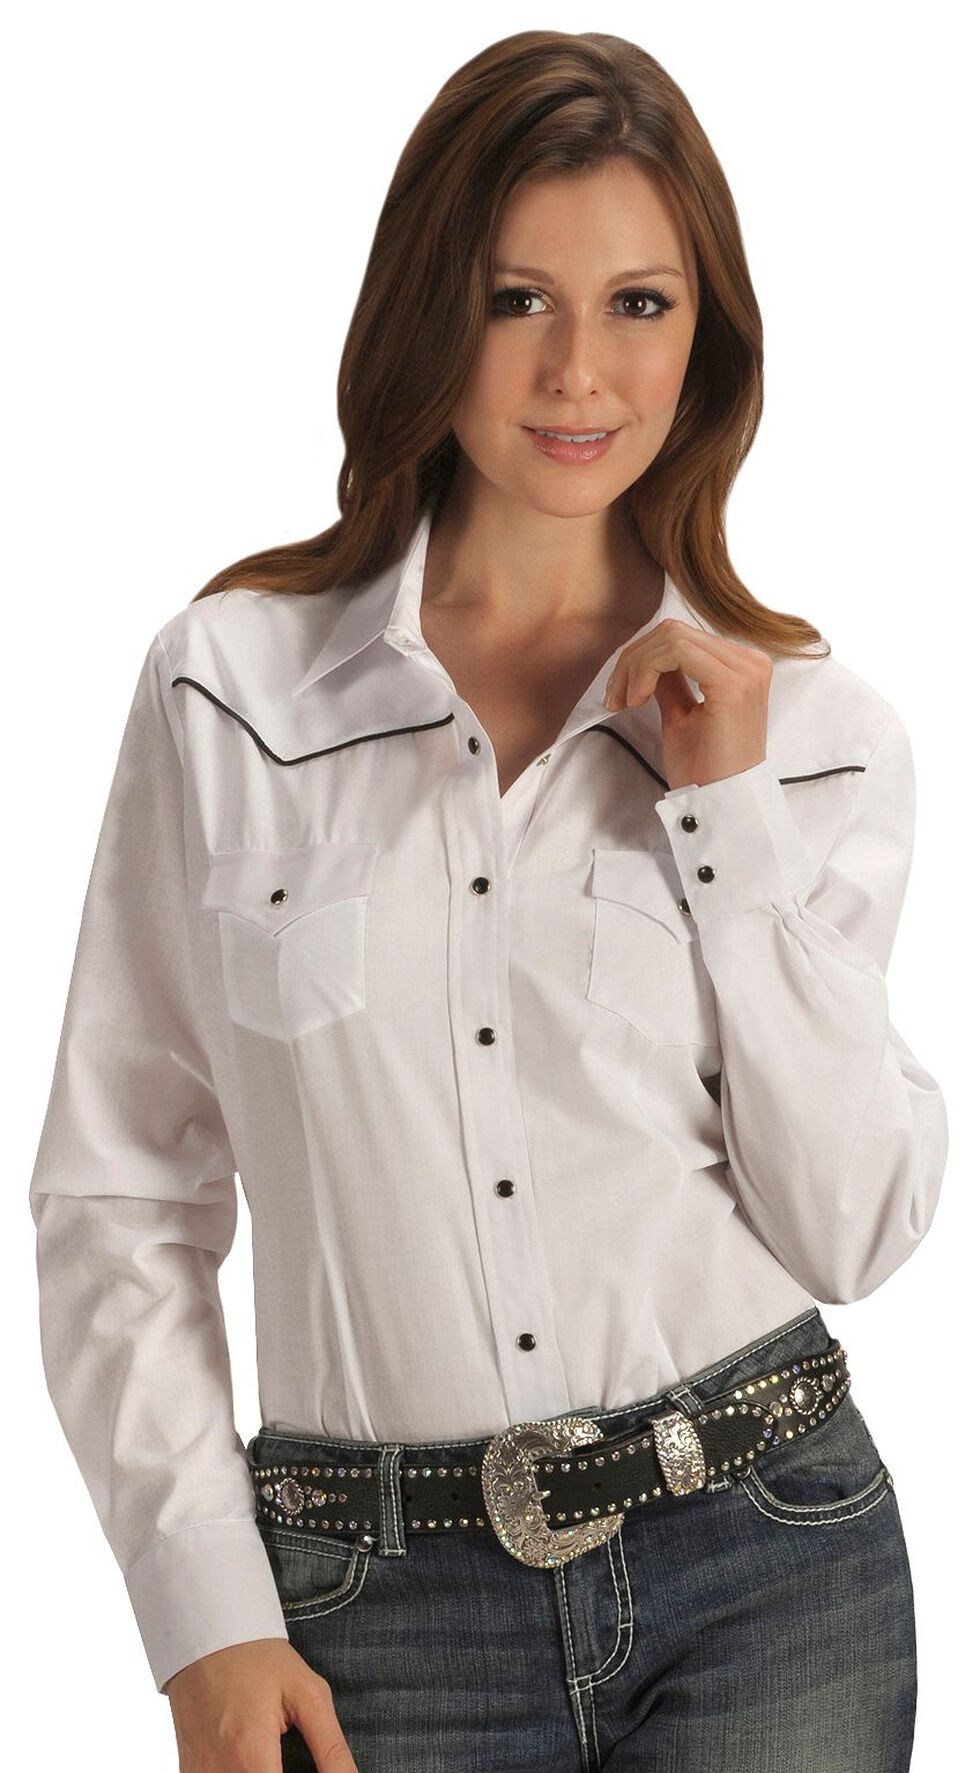 Ely Solid White with Black Piping Western Shirt, White, hi-res